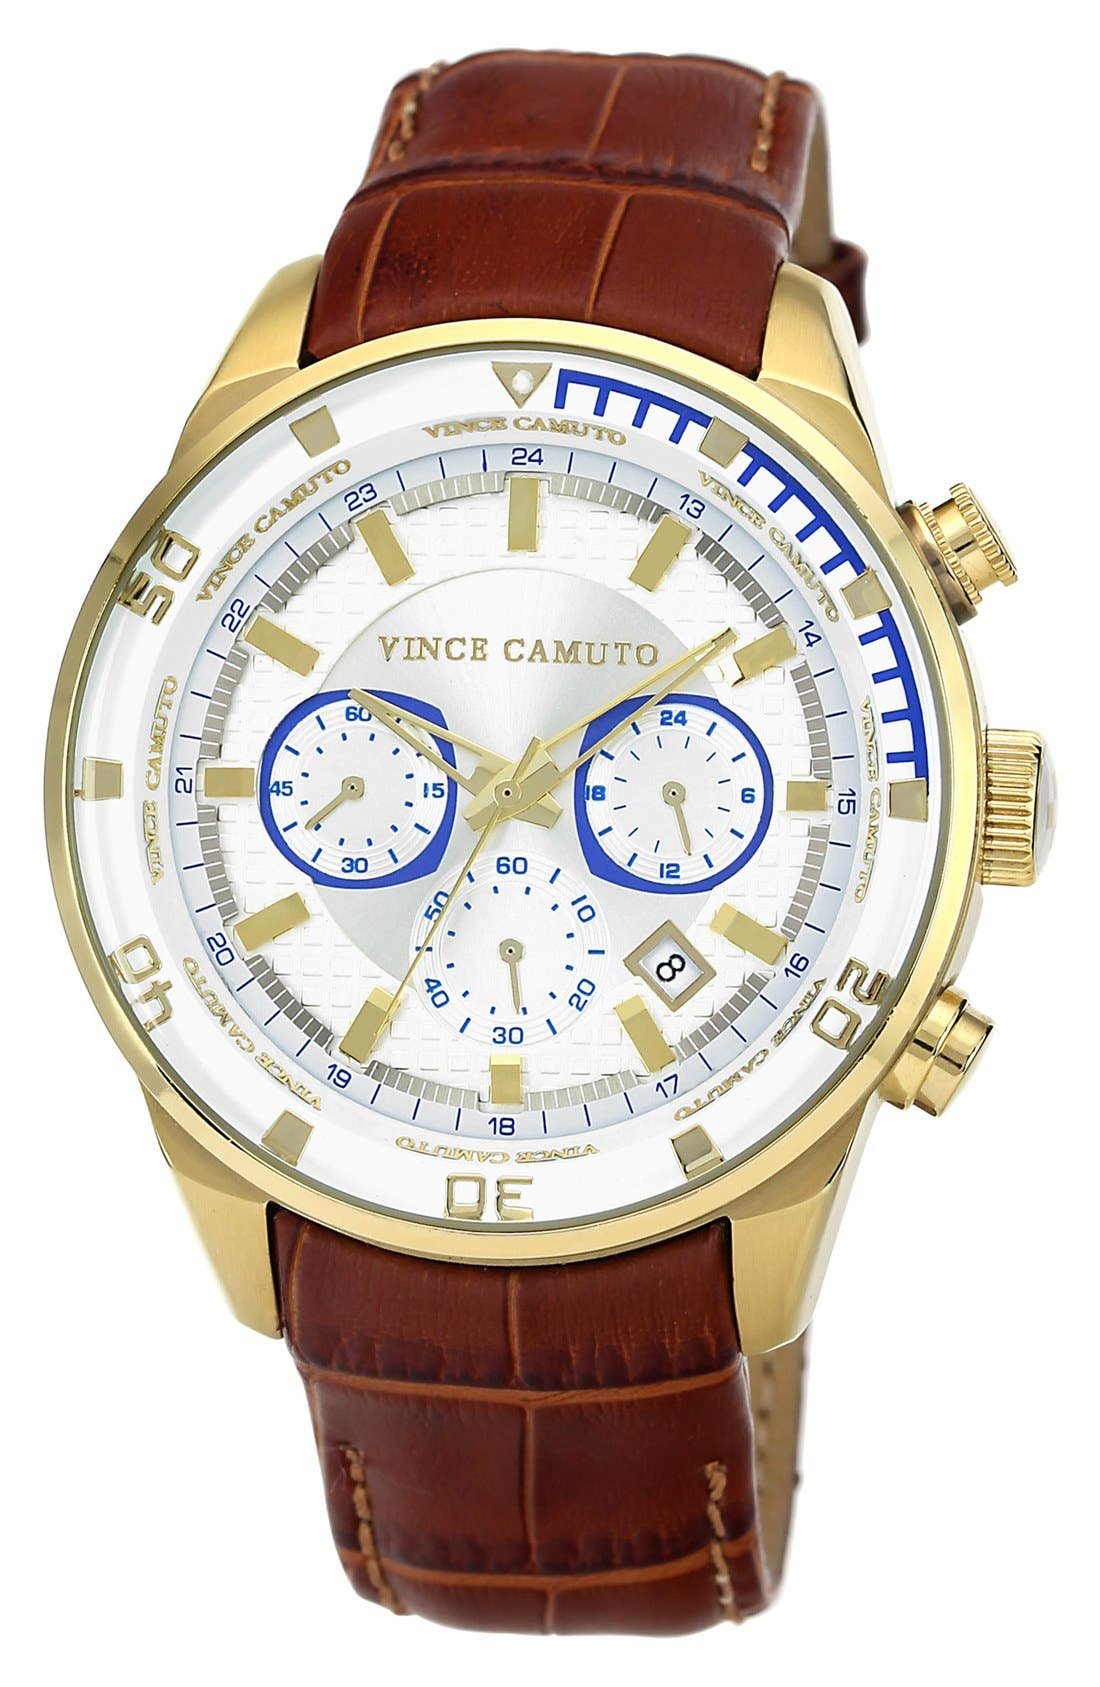 Main Image - Vince Camuto 'The Apolo' Round Leather Strap Watch, 45mm